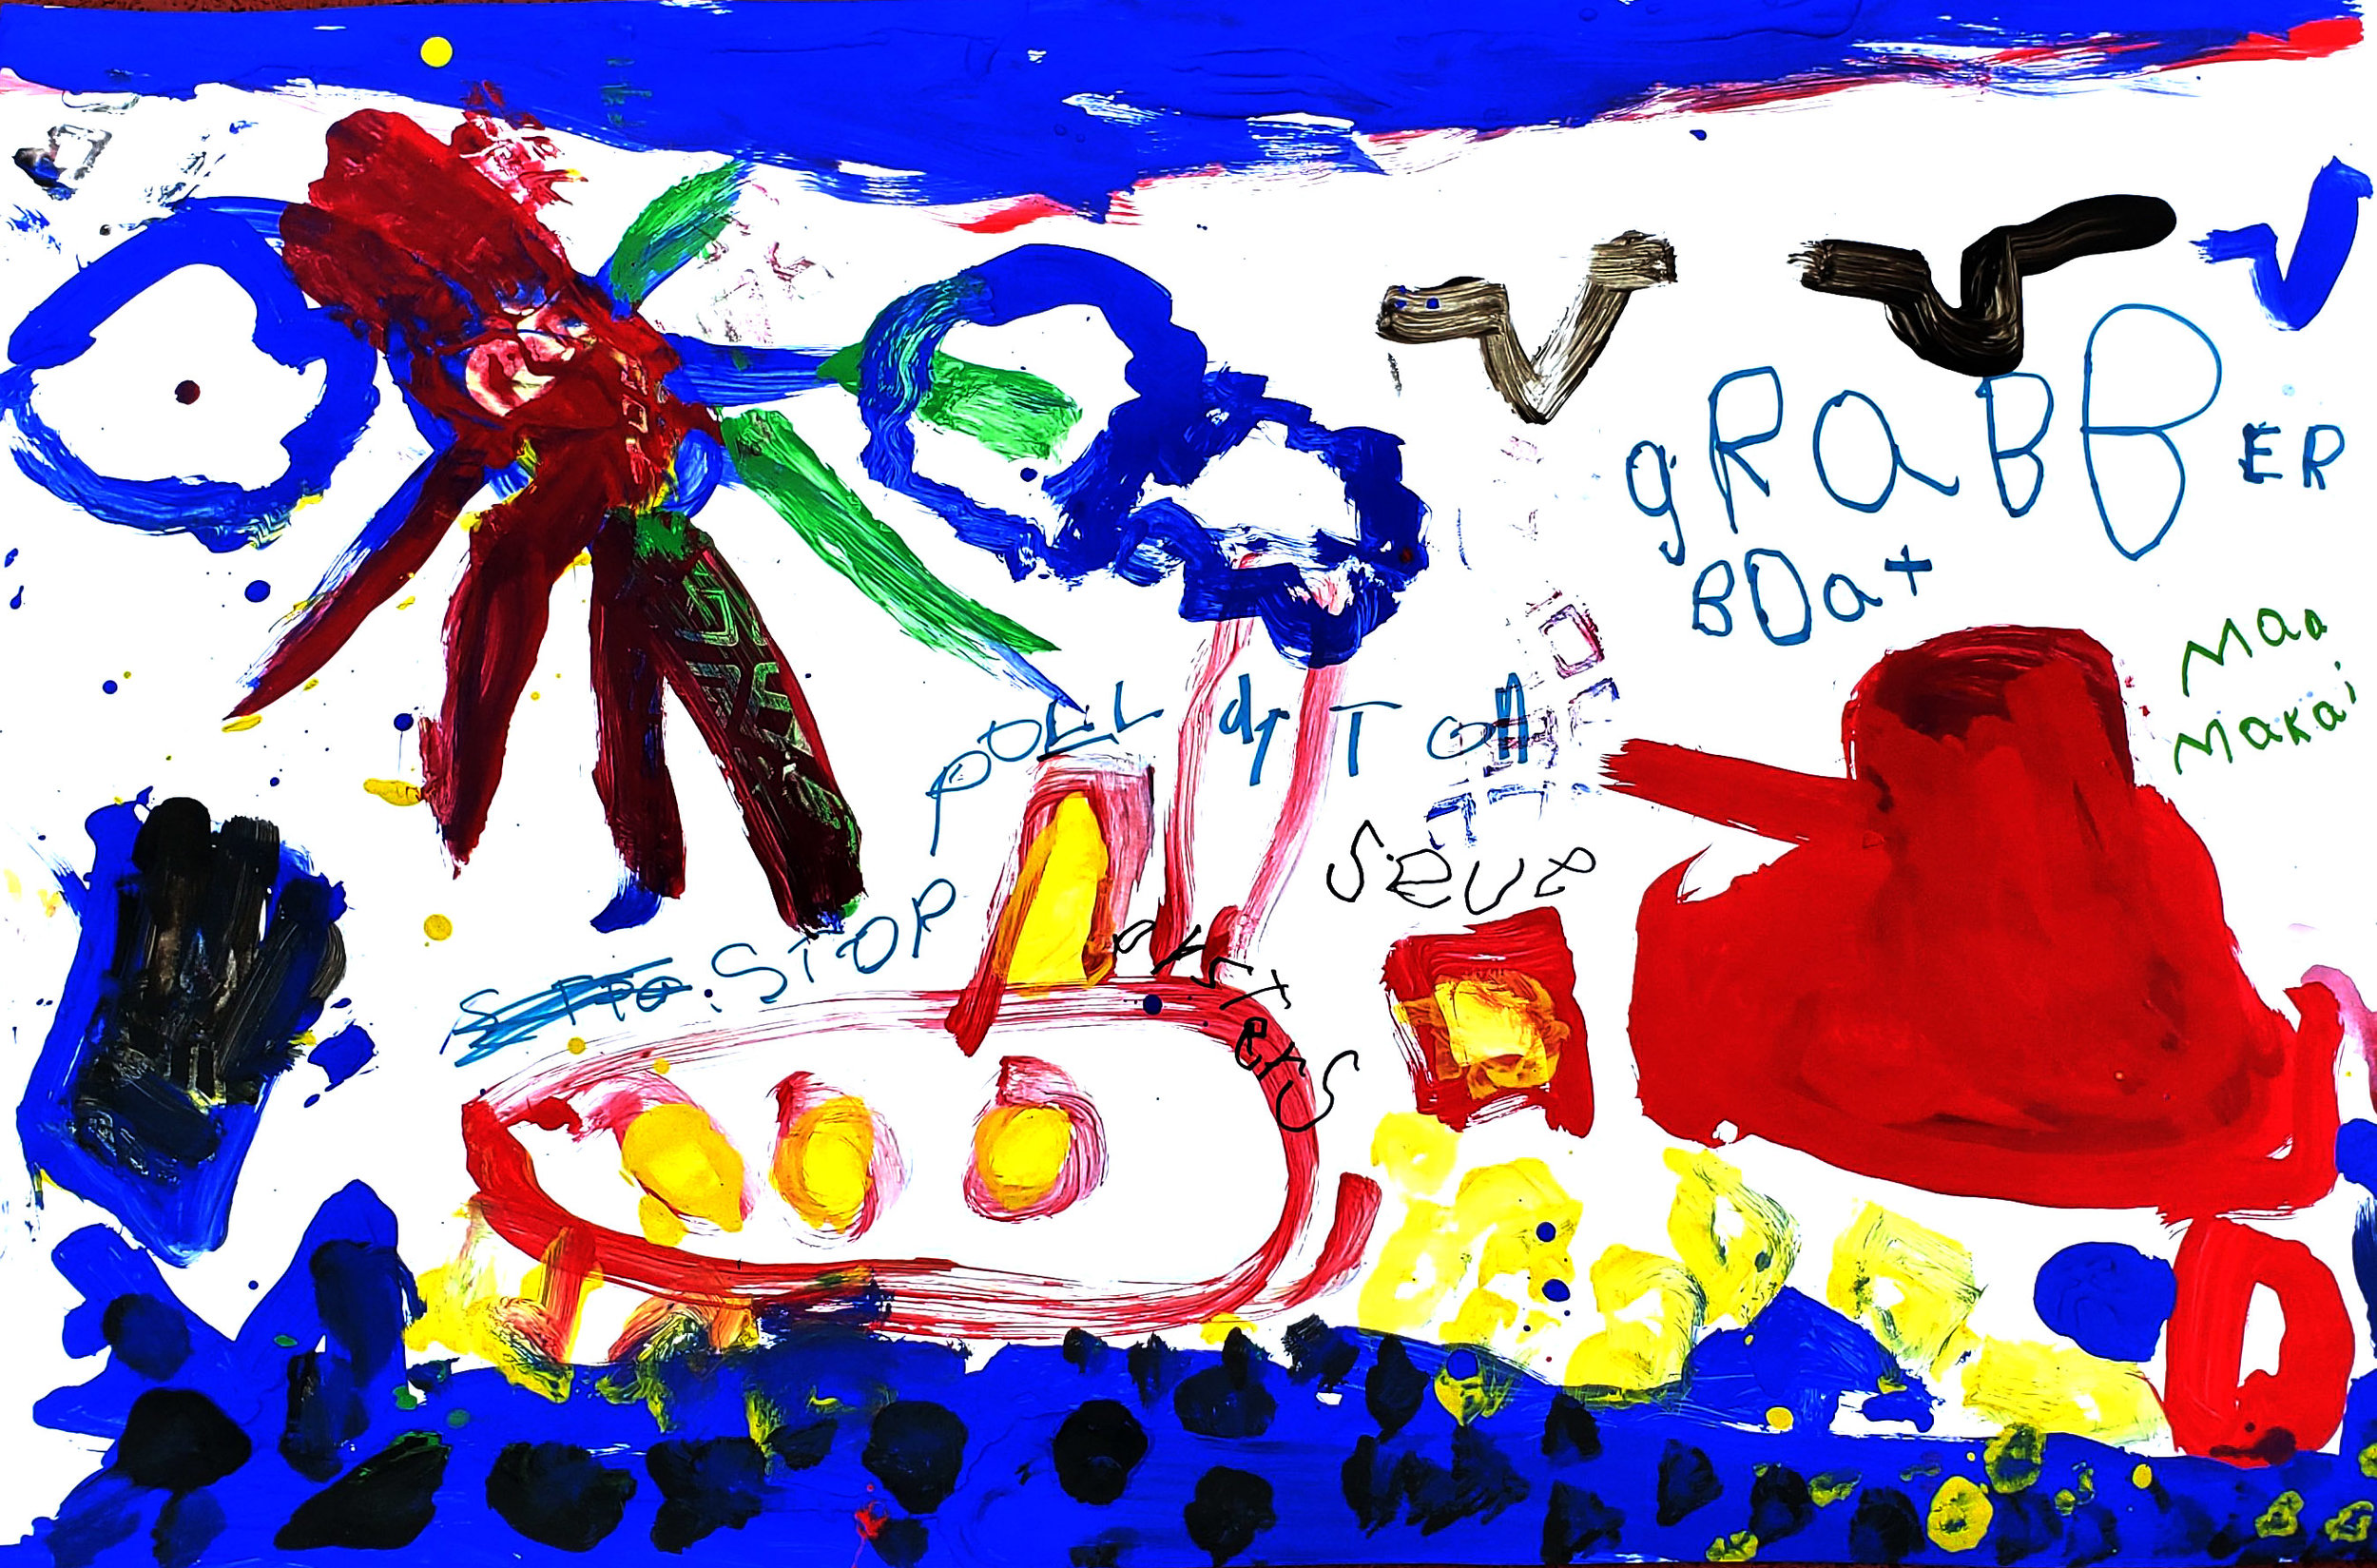 1st Grade Oyster Poster(1c) - s10 phone rtch crop.jpg